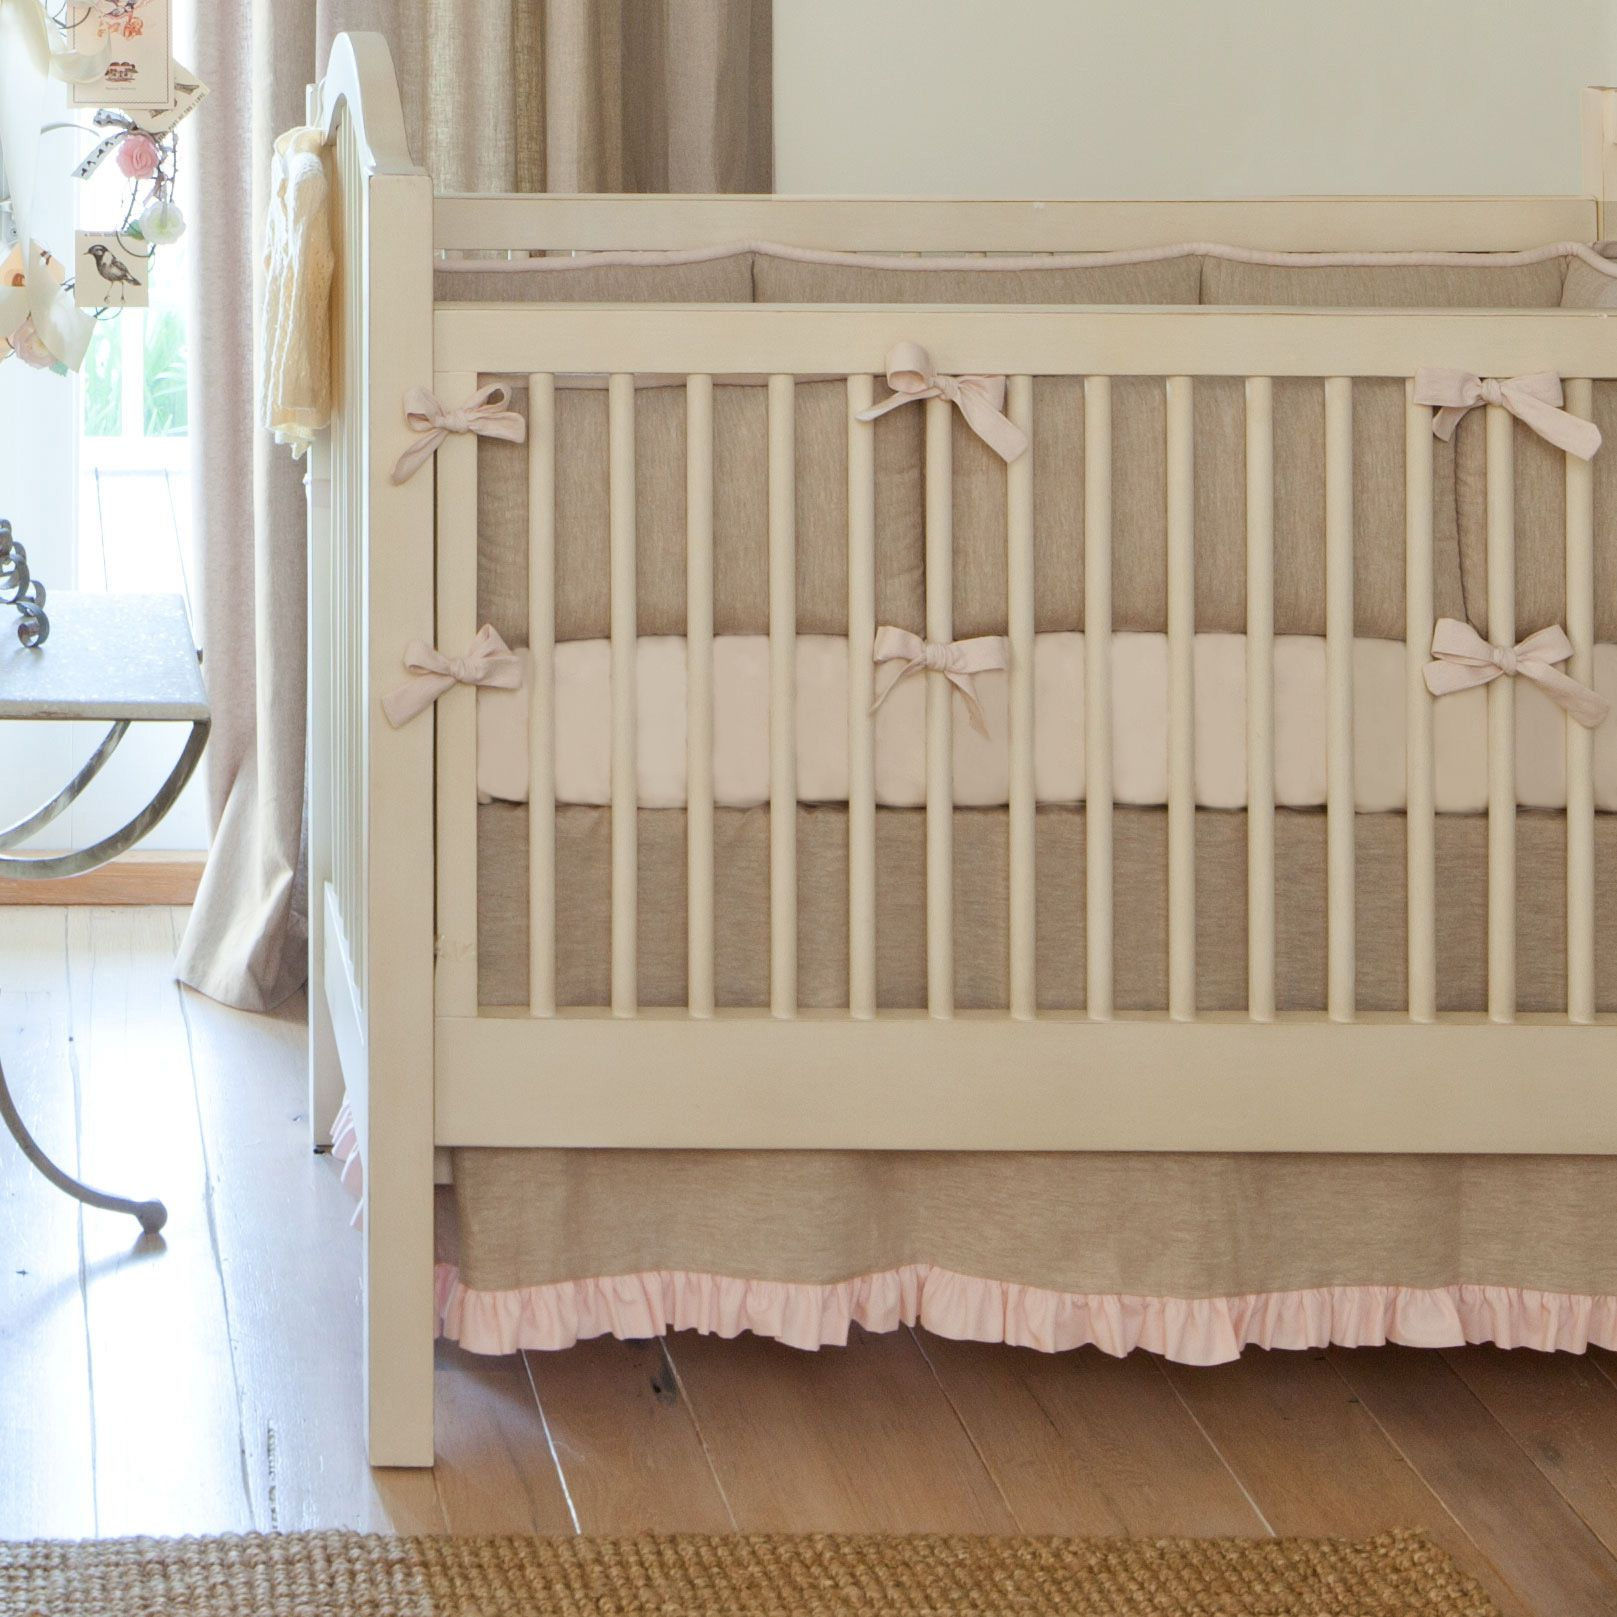 cribs turn ideas beds for that how twin work of into bunk bedding image bed